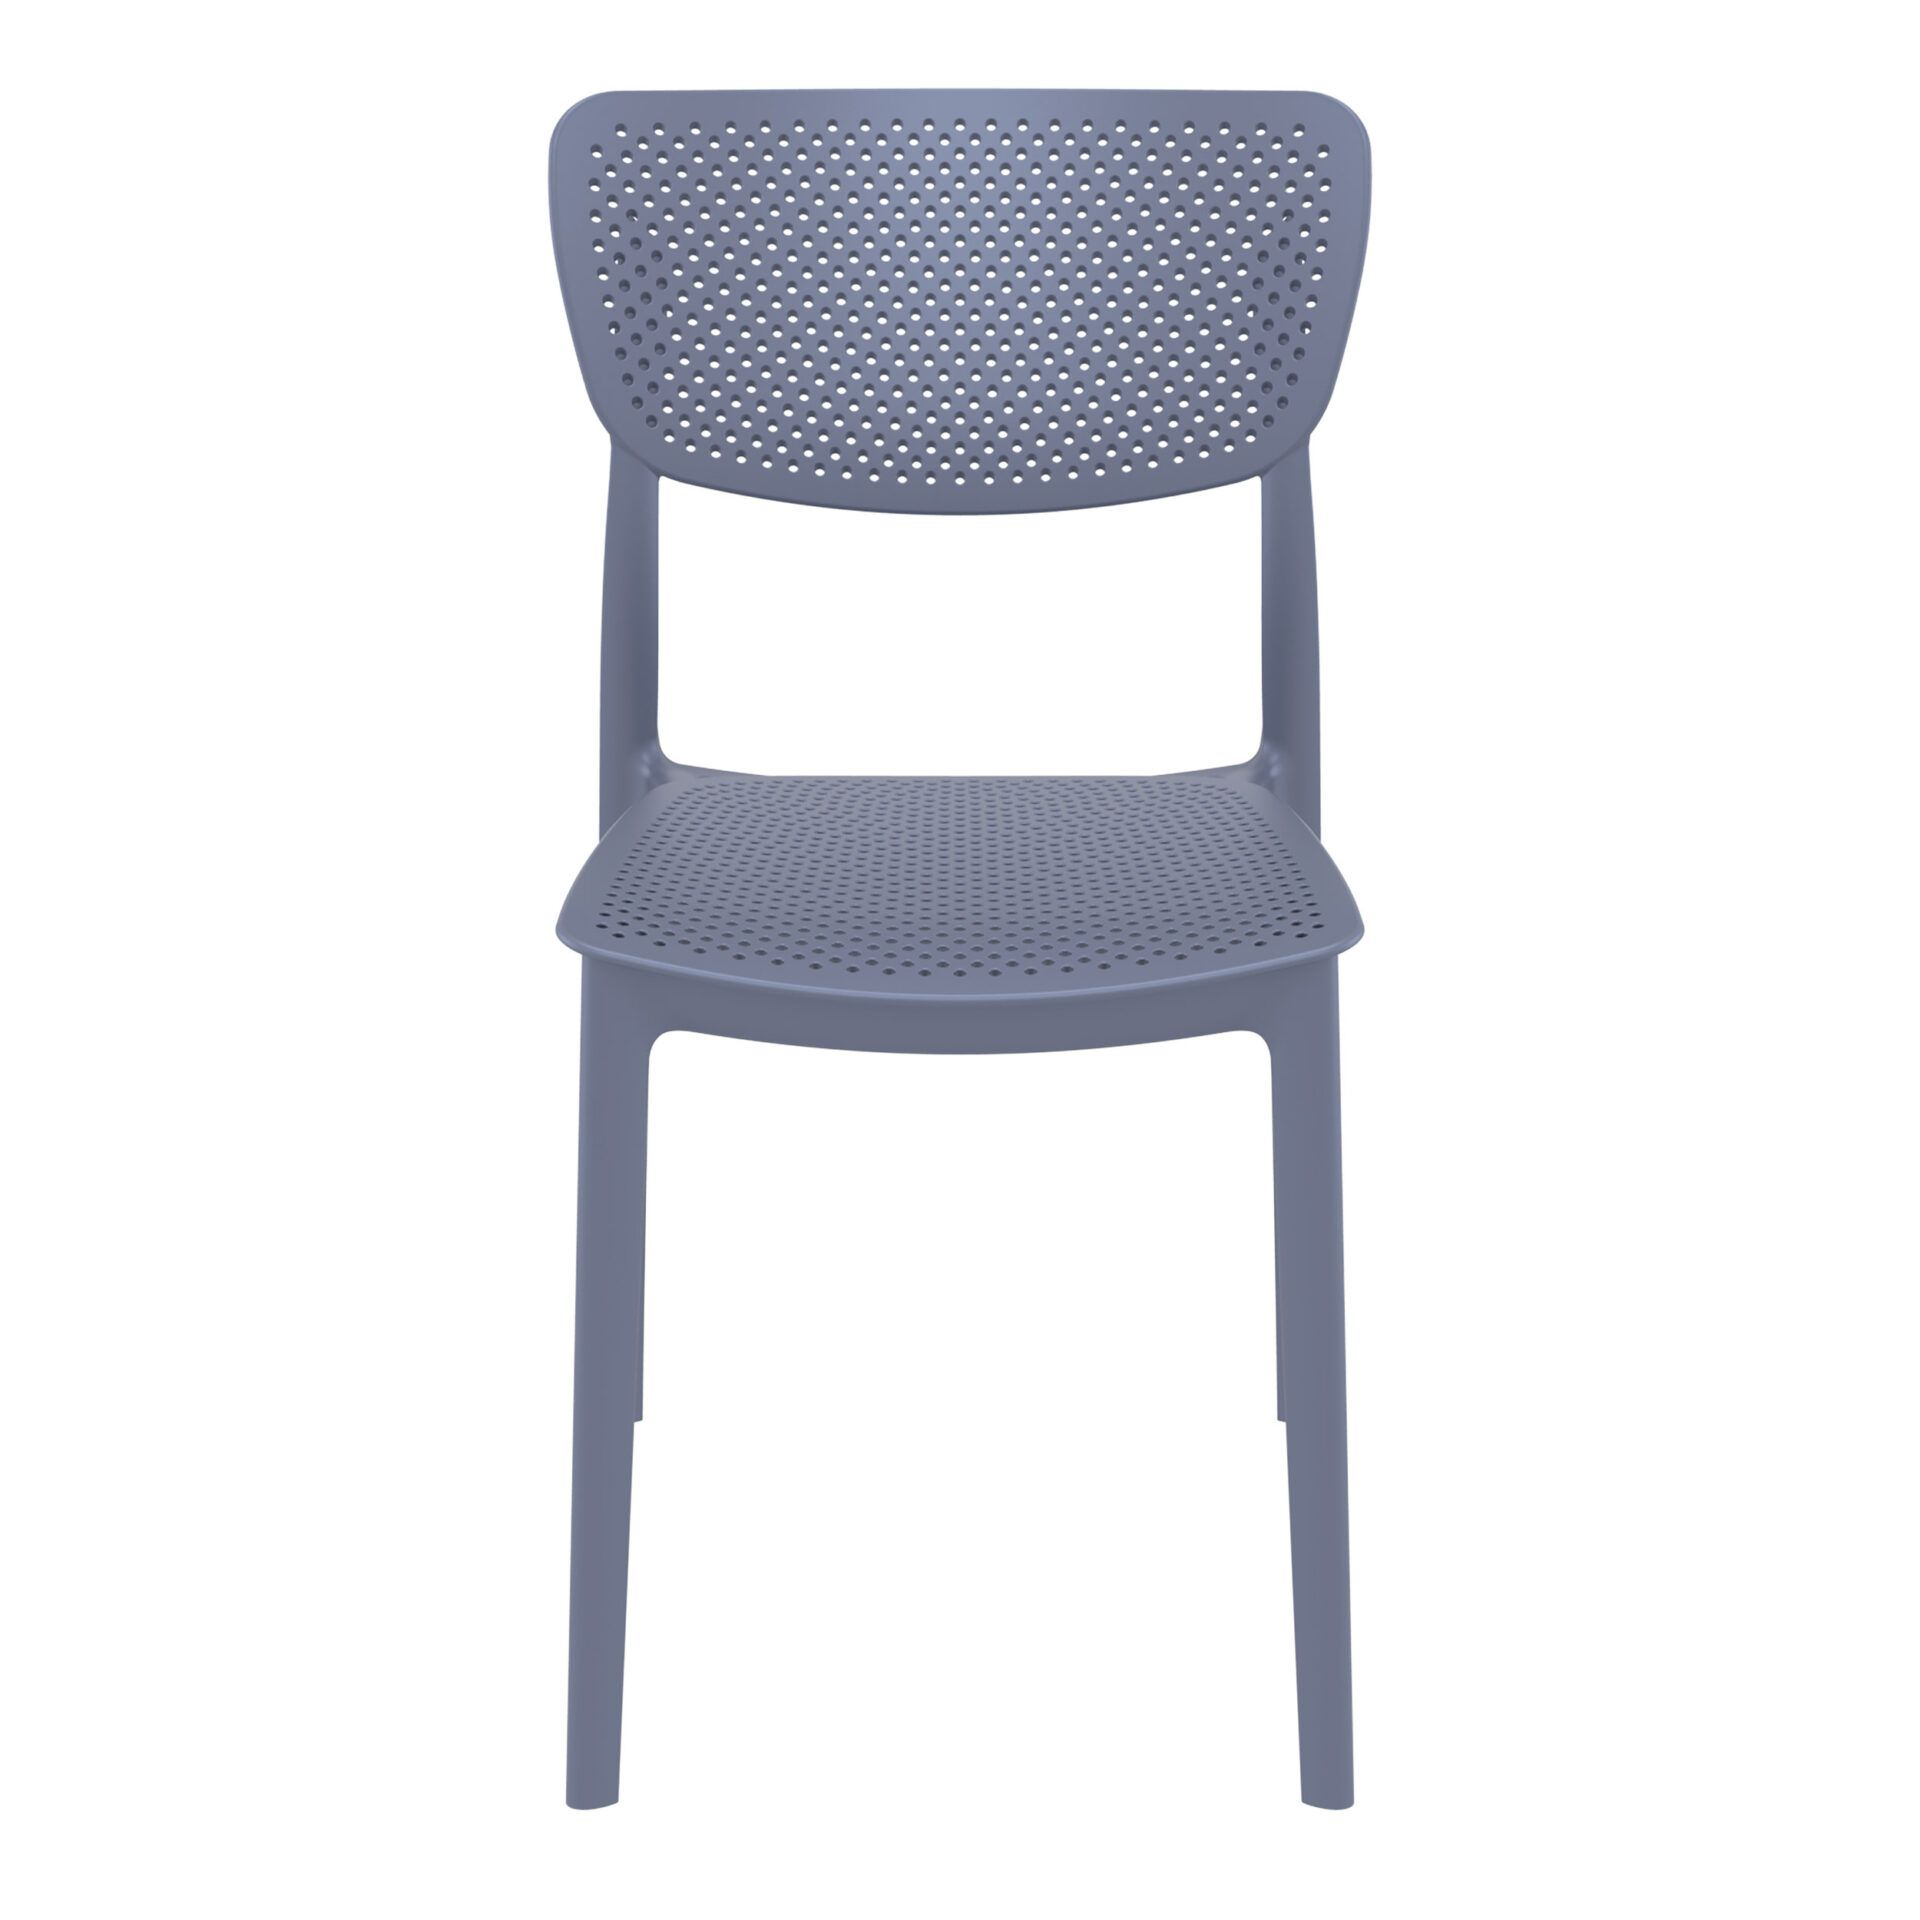 polypropylene hospitality seating lucy chair darkgrey front